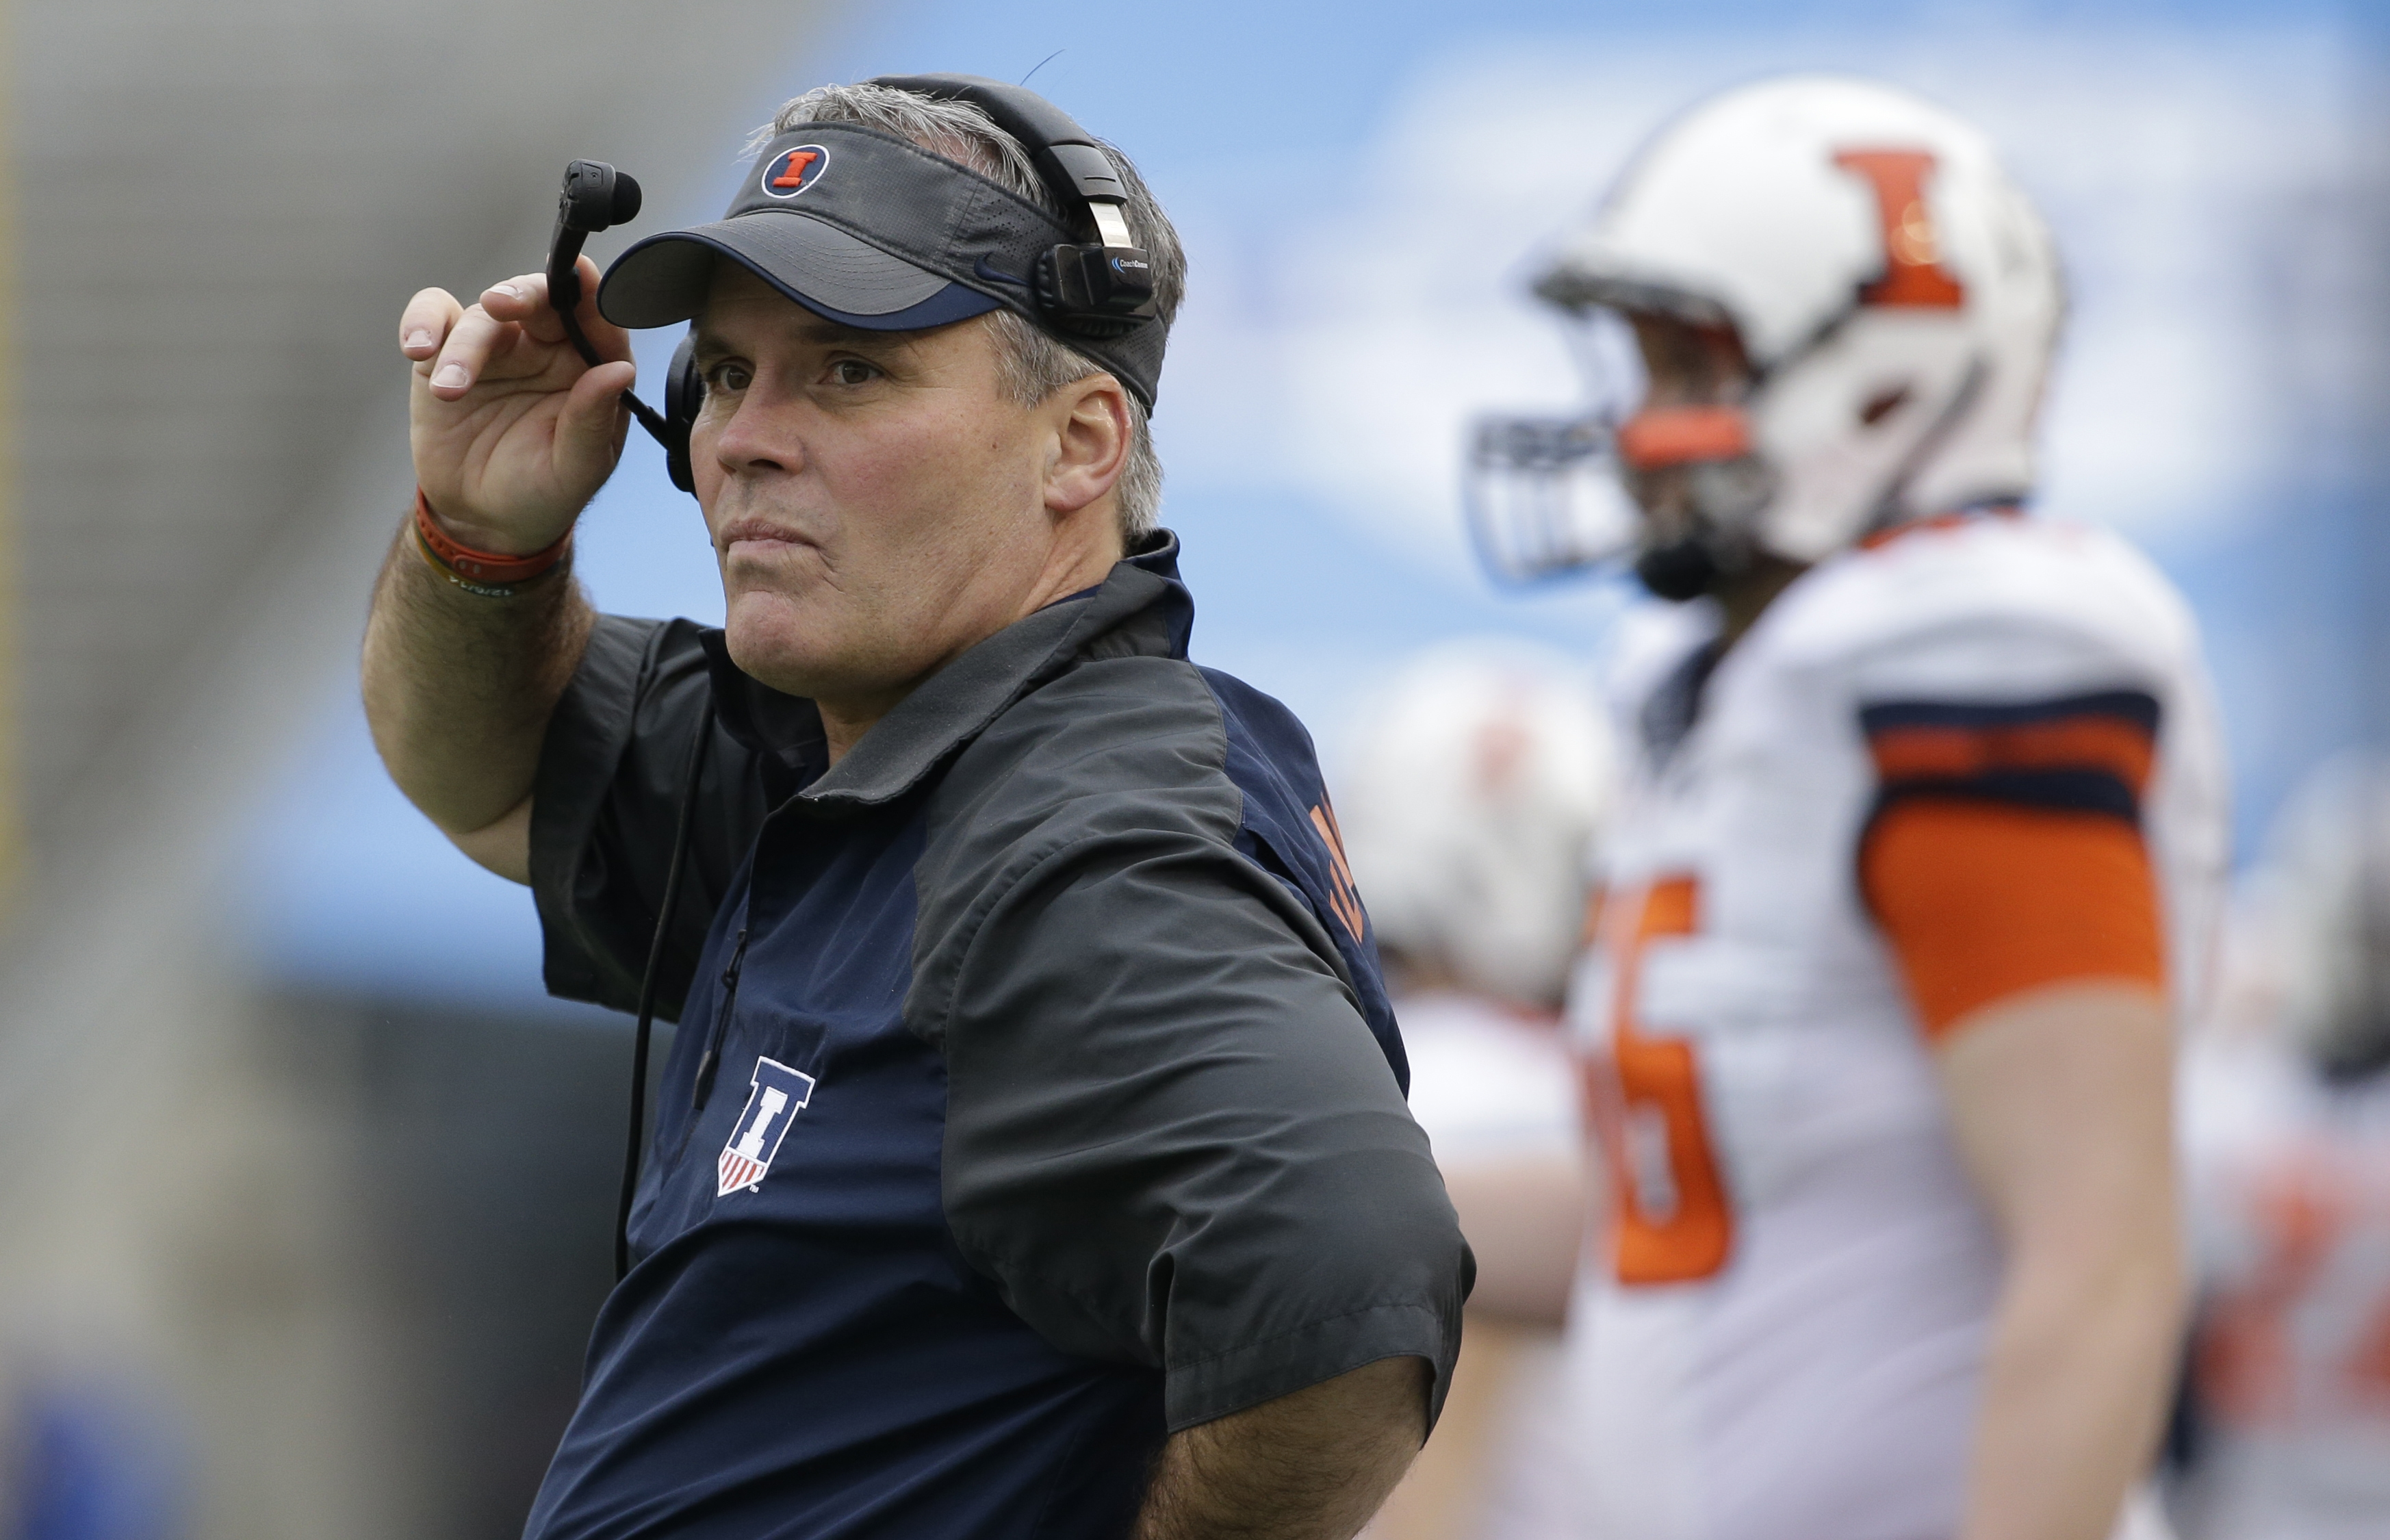 FILE - In this Dec. 26, 2014, file photo, Illinois head coach Tim Beckman watches from the sidelines during the first half of the Heart of Dallas Bowl NCAA college football game against Louisiana Tech in Dallas. A national advocacy group for college footb